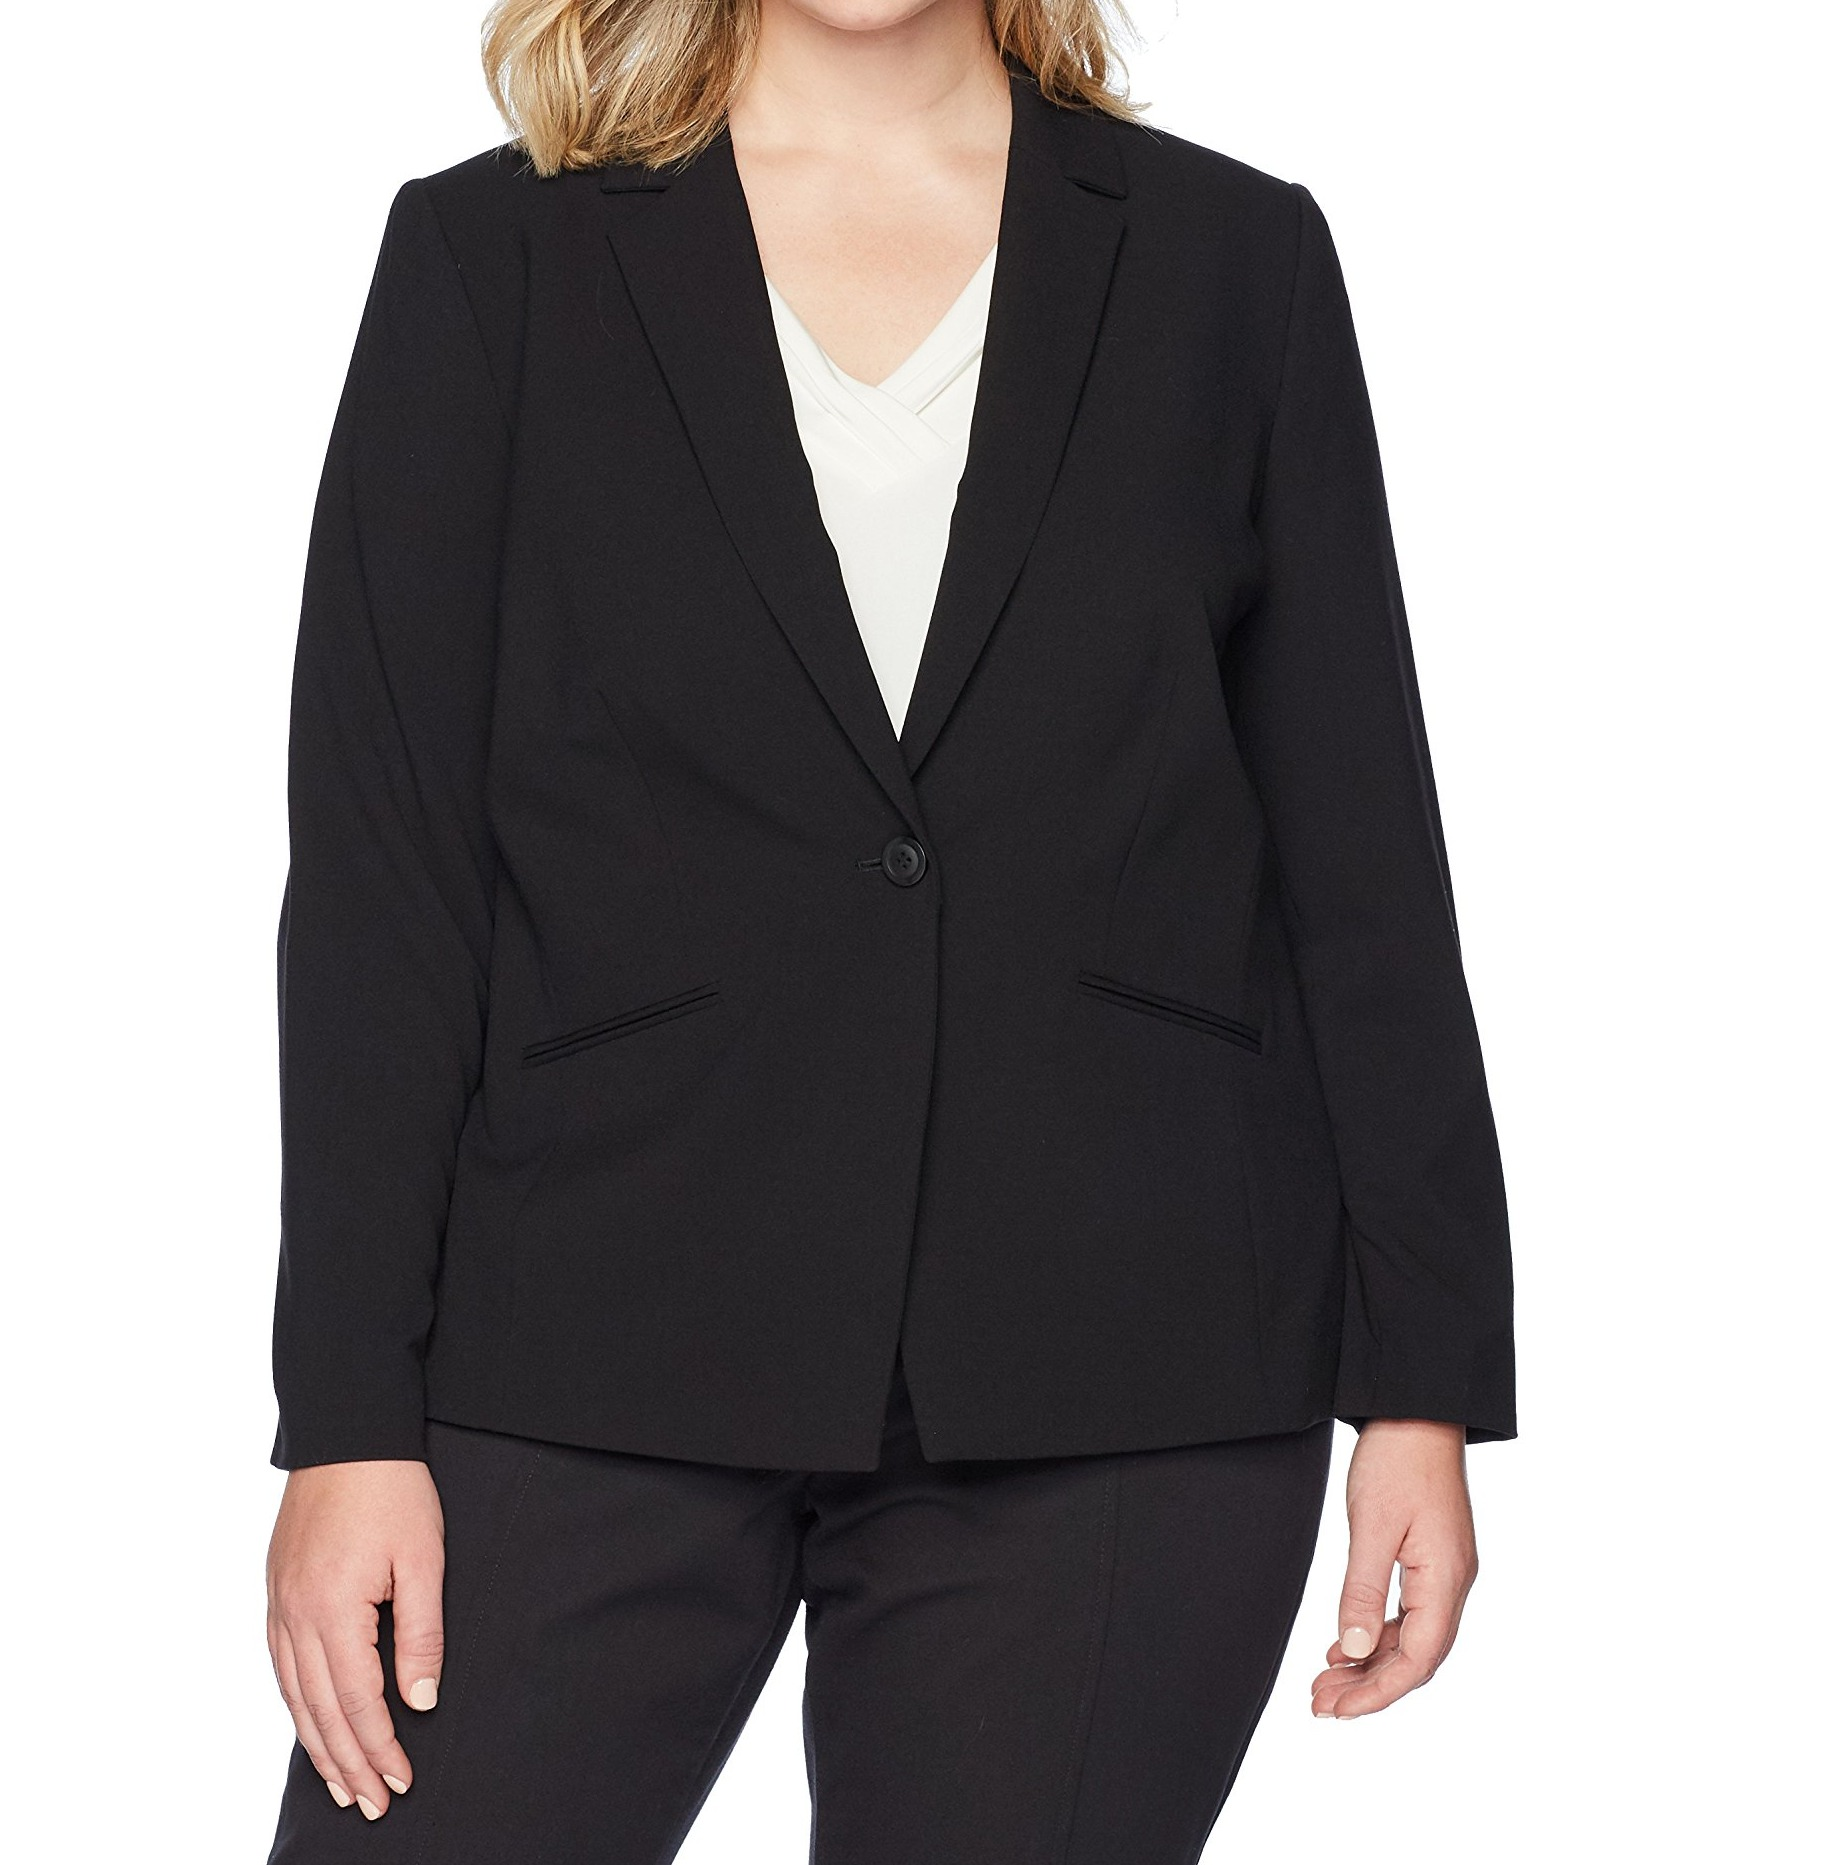 d4563a23e25 We have more Tahari by ASL in Size 24W - Click Here Click to see all Womens  Suits   Blazers in Size 24W